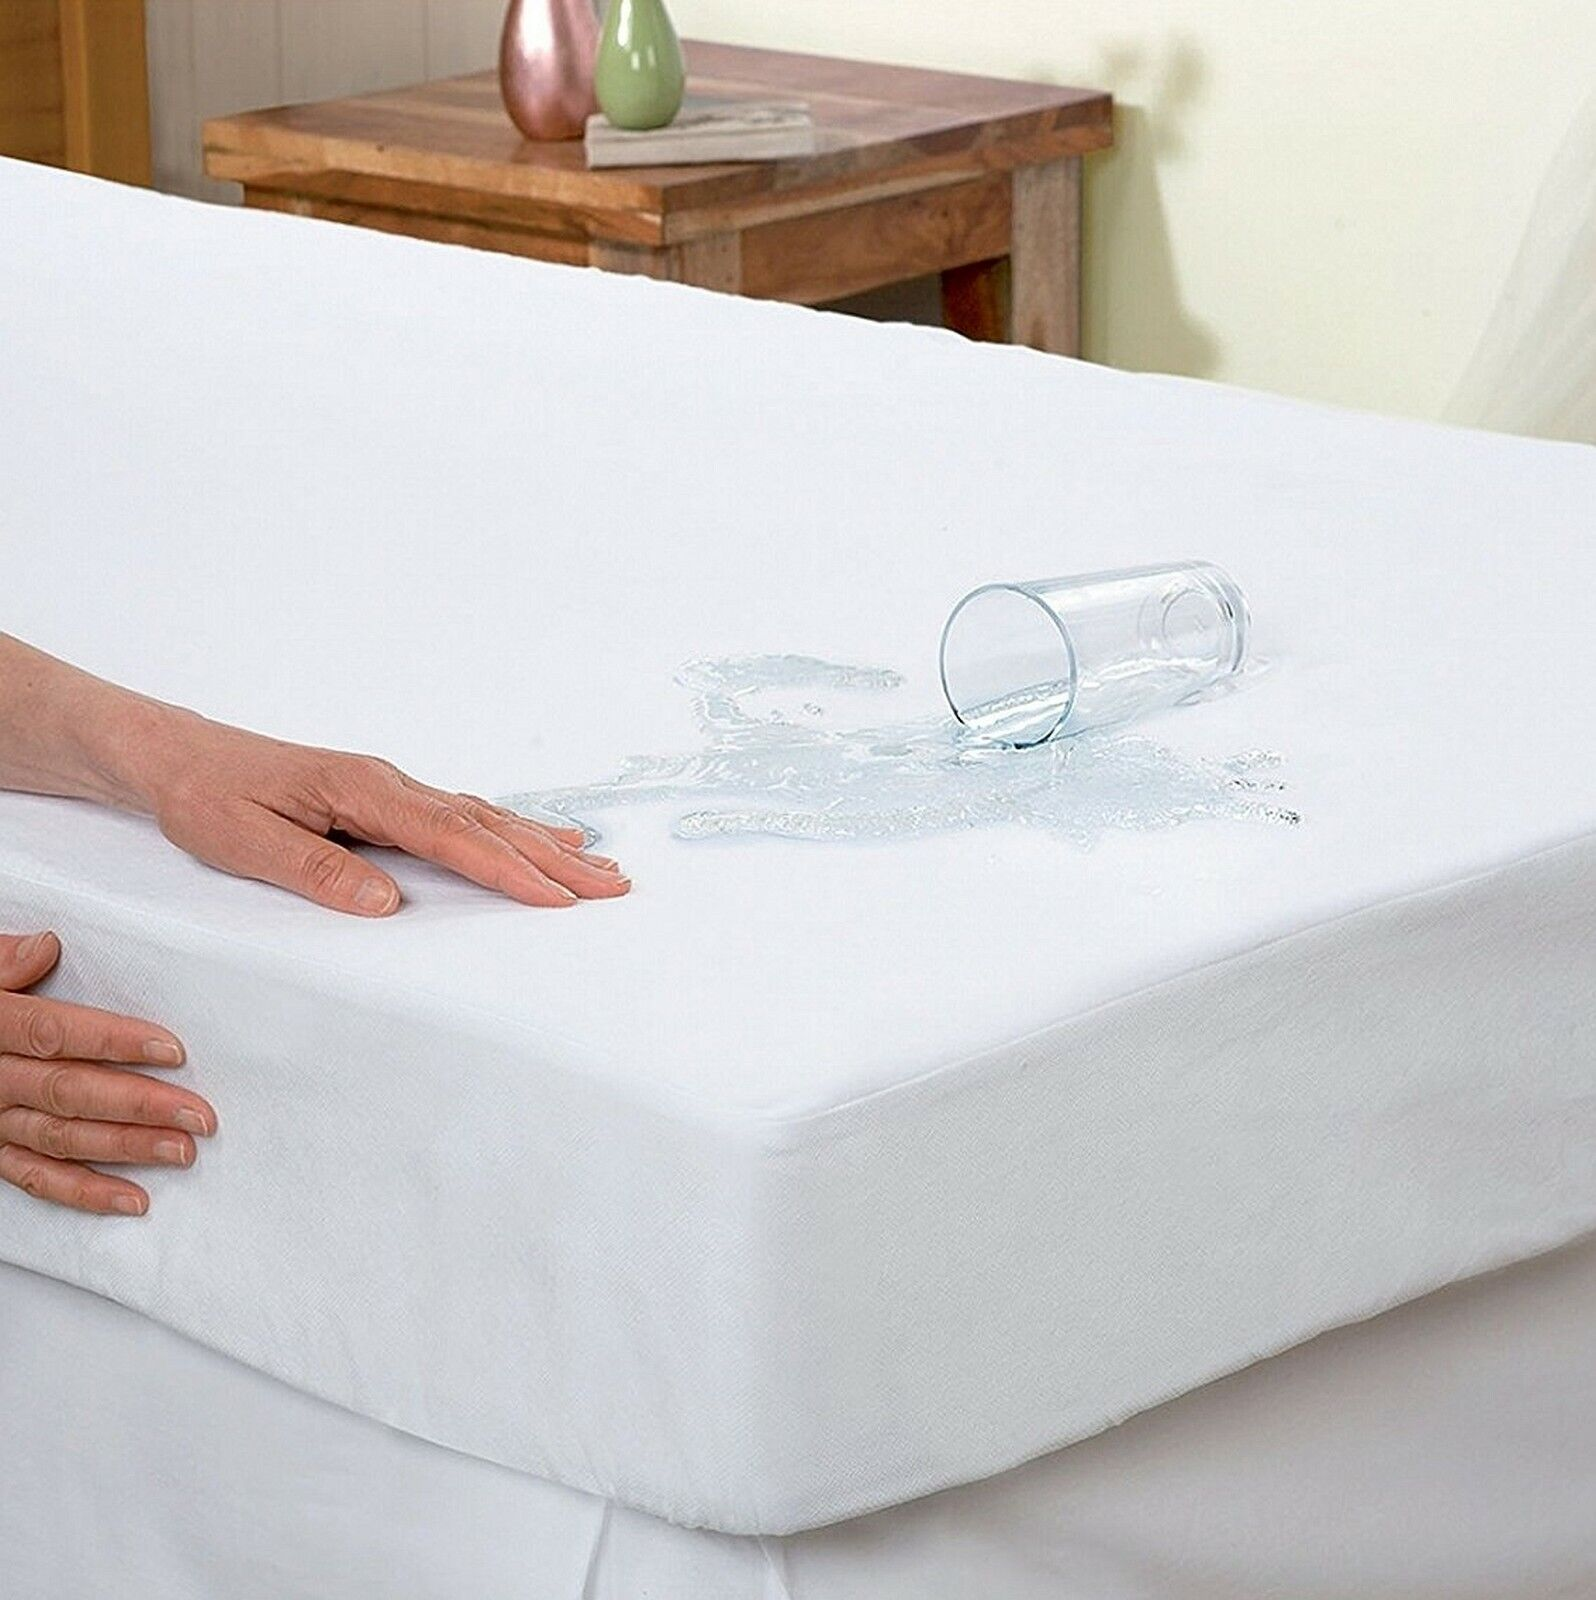 Water Proof,BED BUG BLOCKER ZIPPERED MATTRESS COVER UP TO 15